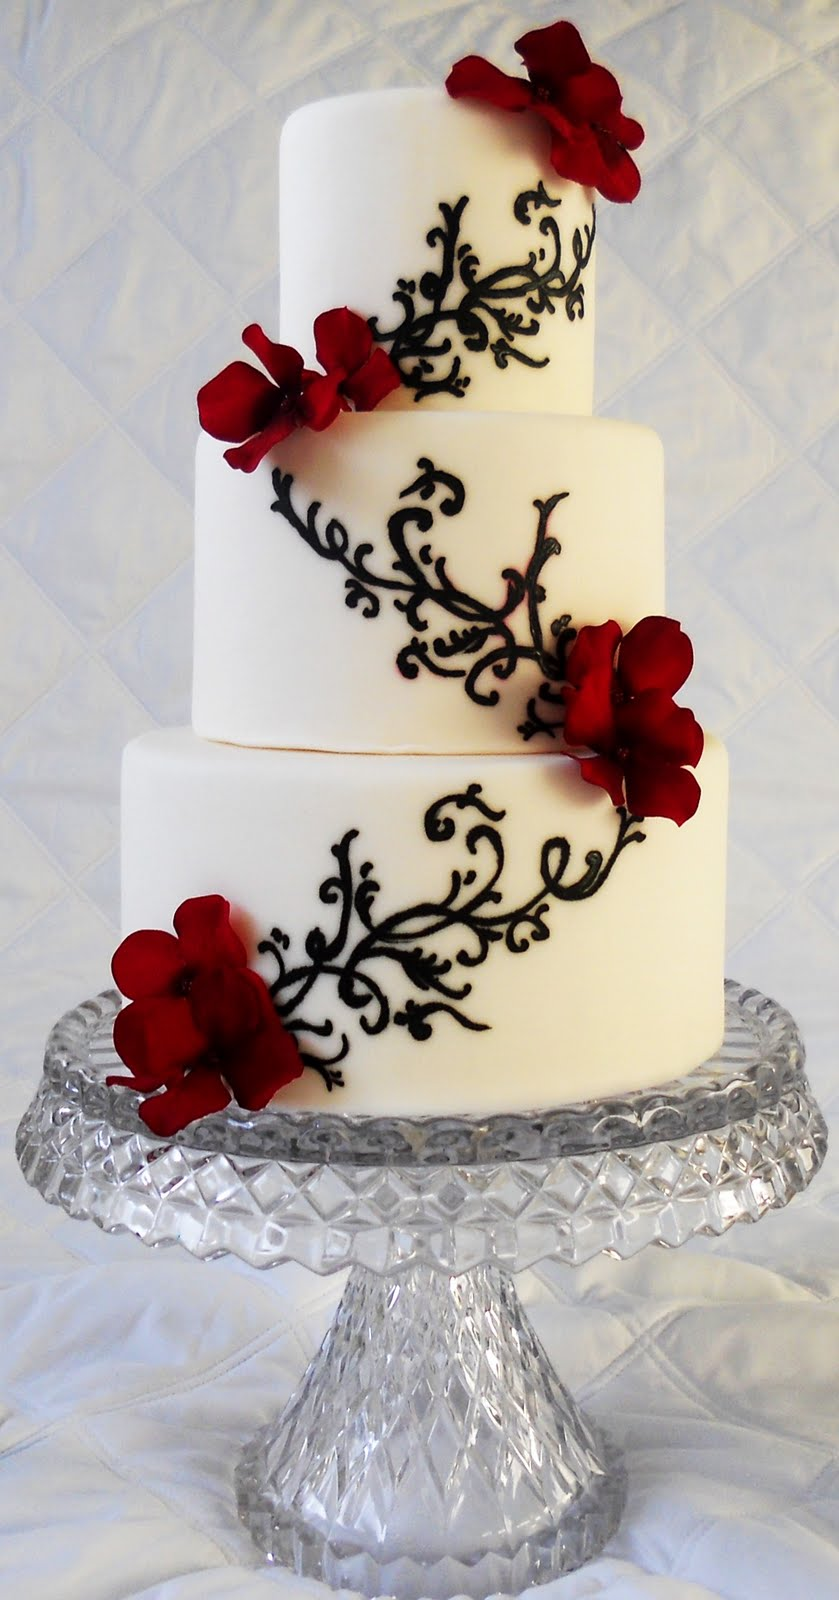 wwwmanueles manuel blogspot wedding cakes prices Wedding Cakes Images